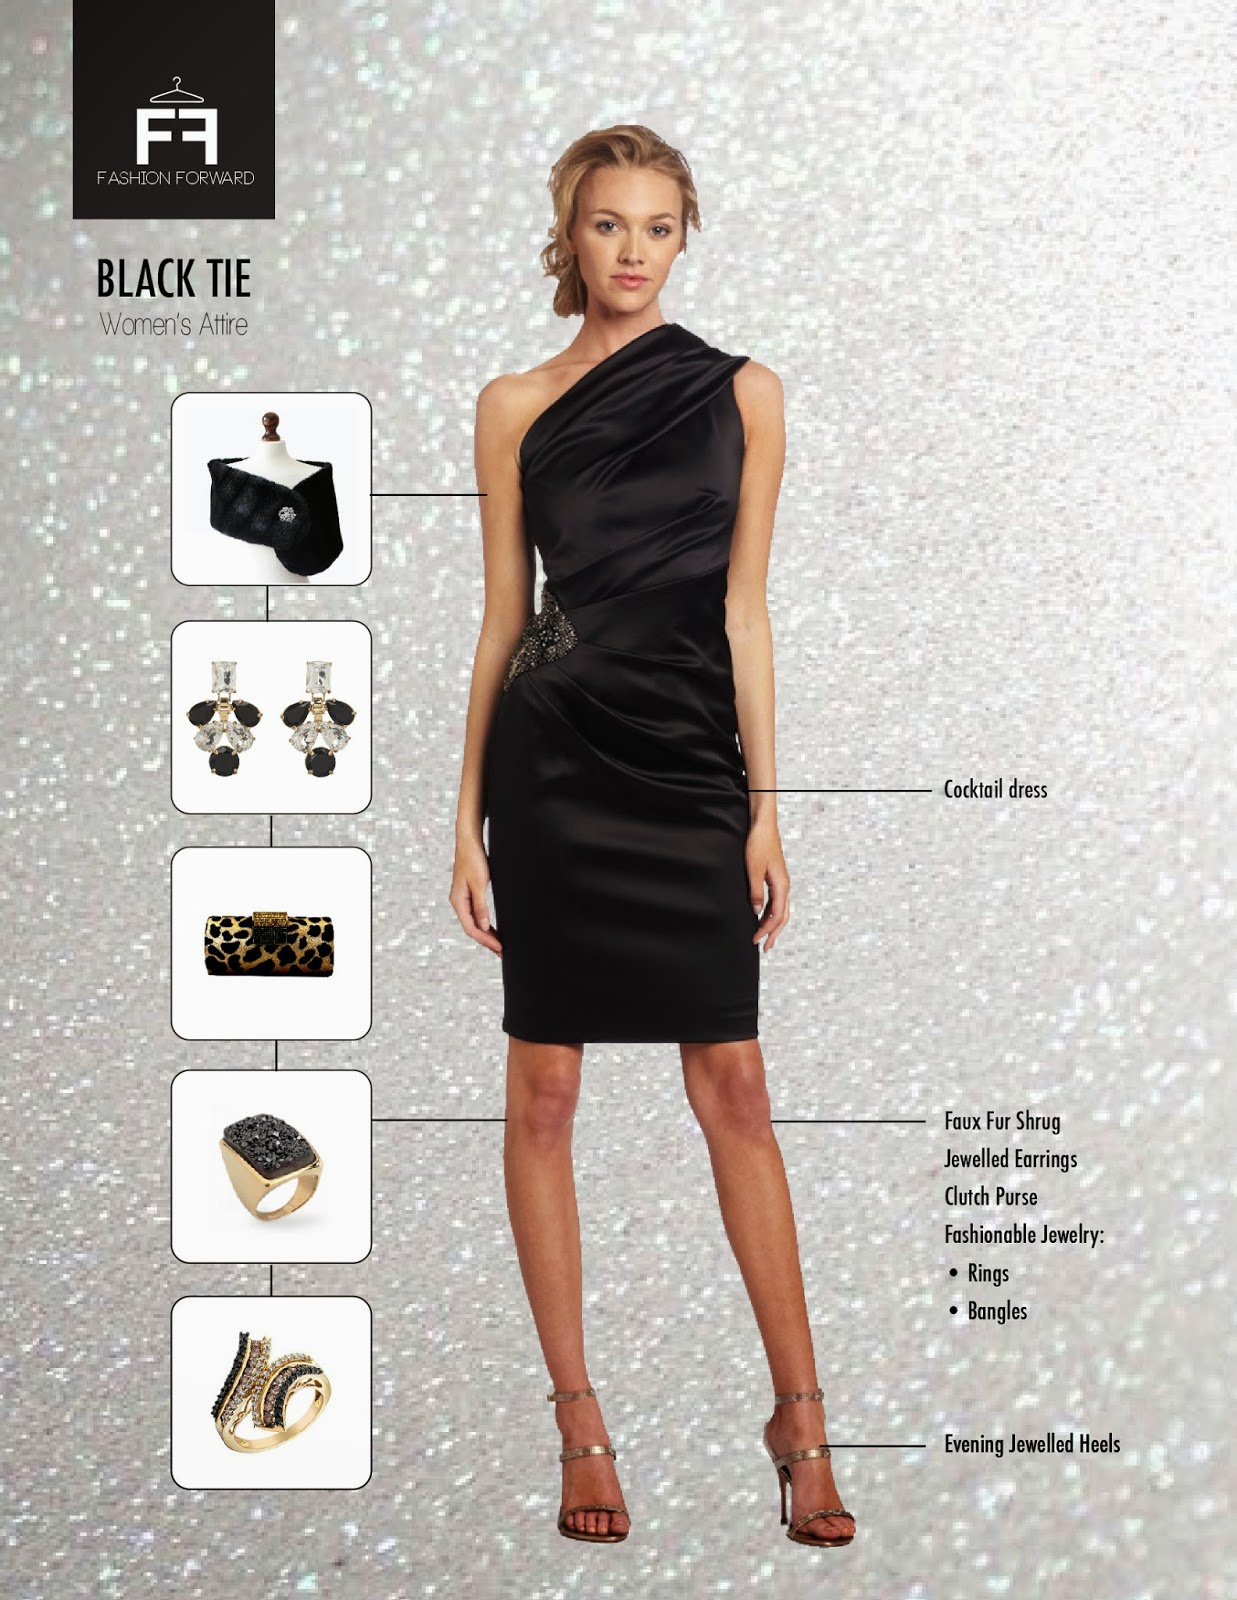 Dress codes for evening events near